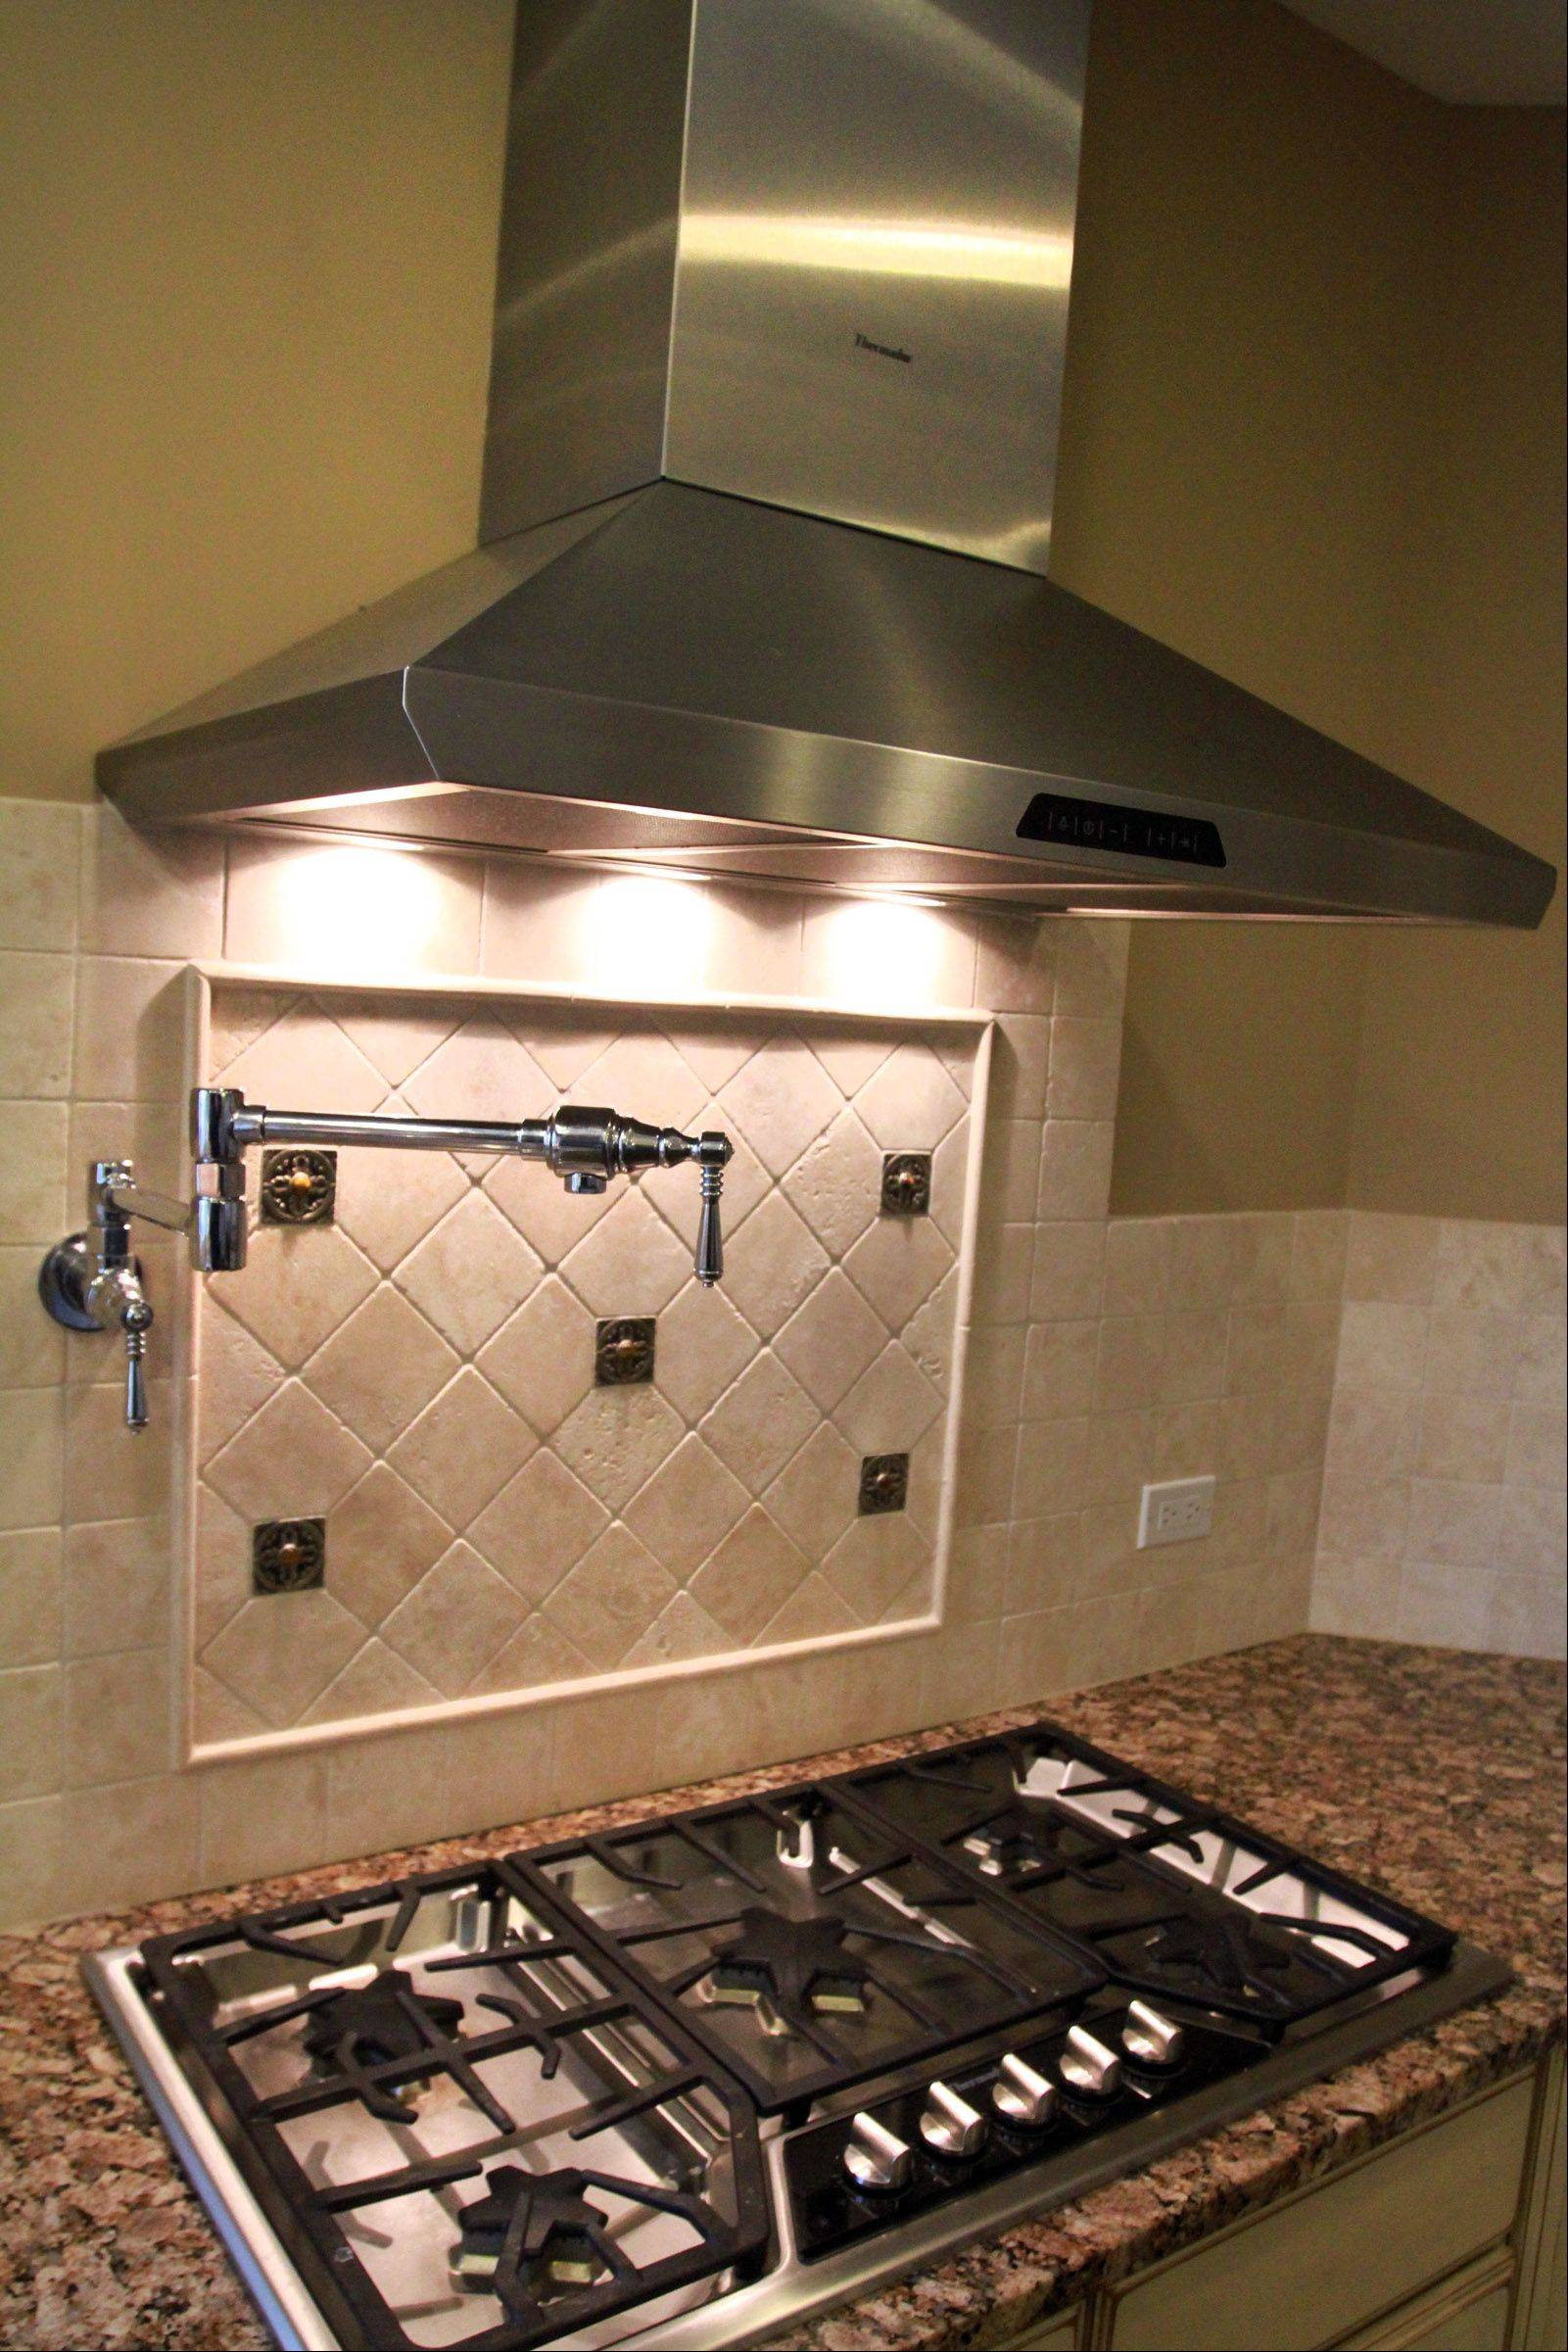 The Fretzin family kitchen includes a Thermador professional oven and range with a pot-filler faucet over the stove.